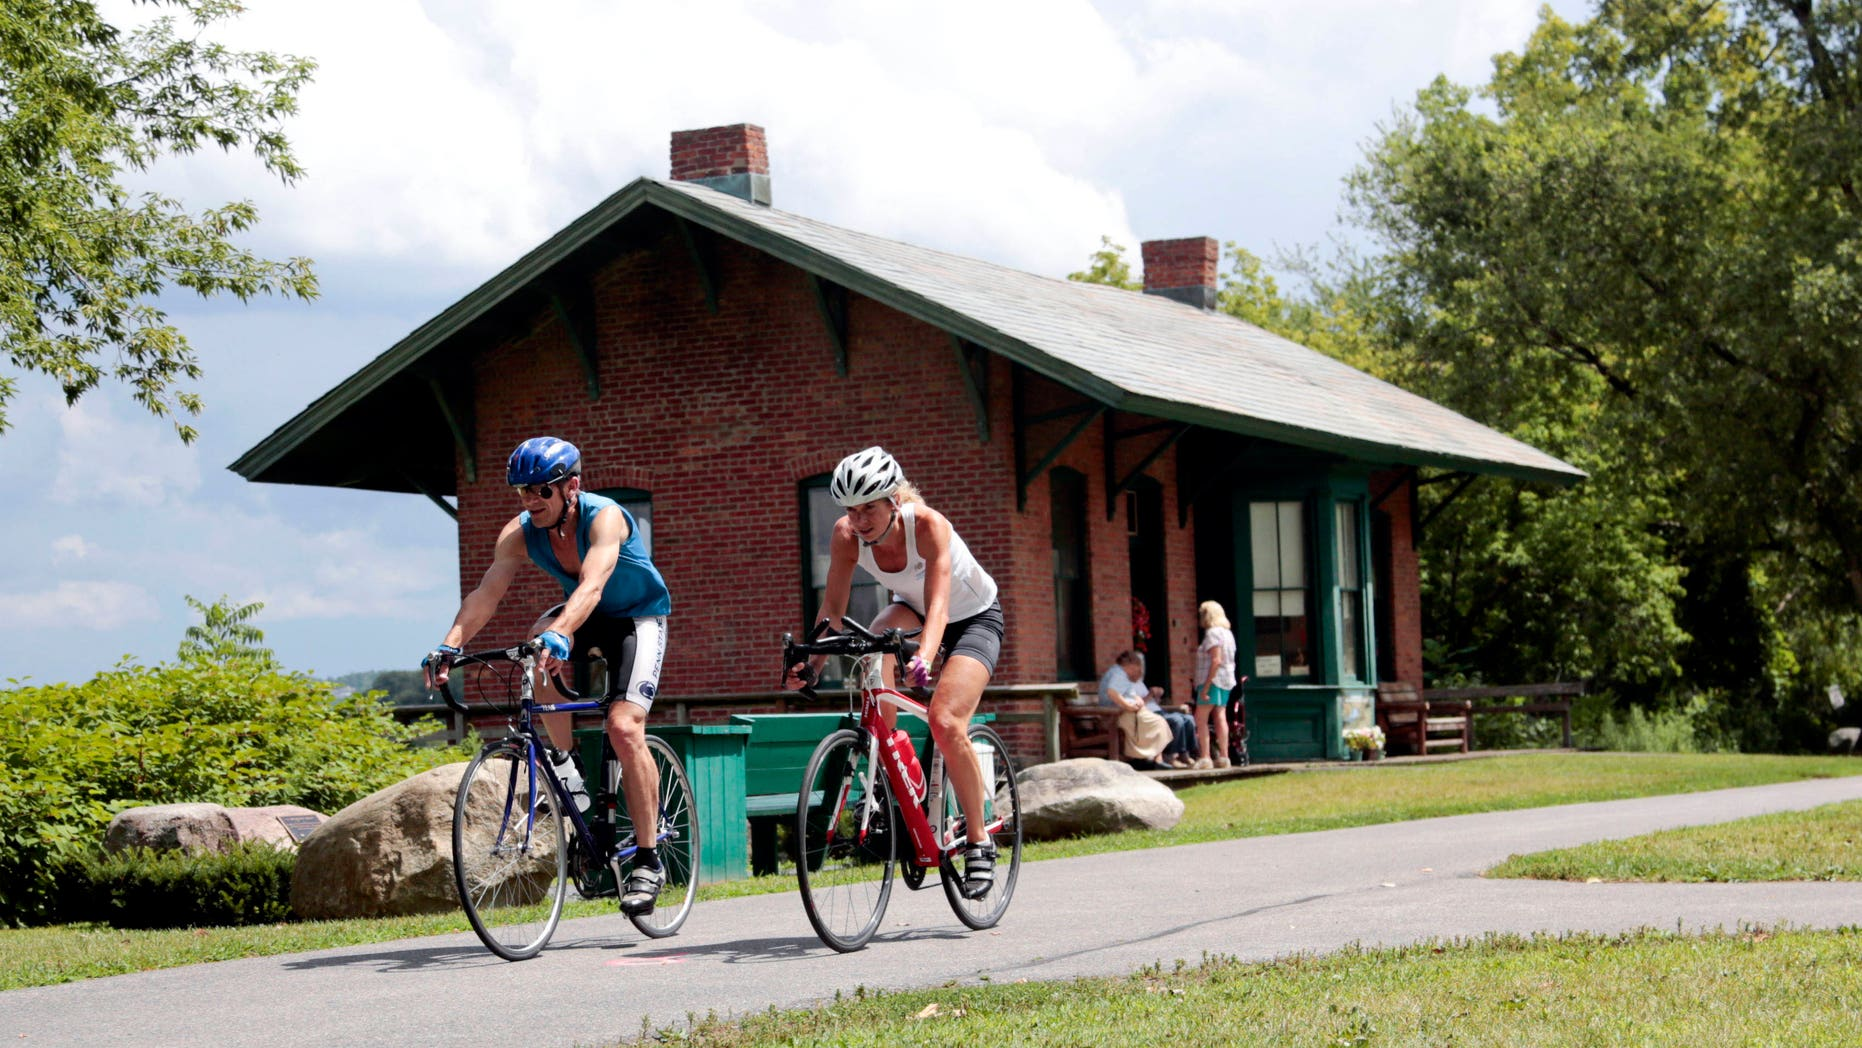 FILE- In this Tuesday, Aug. 4, 2015 file photo, cyclists pass the Niskayuna Train Station as they bike on the Canalway Trail in Niskayuna, N.Y. Gov. Andrew Cuomo proposed a a 750-mile paved biking and hiking Empire State Trail, of which the Canalway Trail would be part of. (AP Photo/Mike Groll, File)